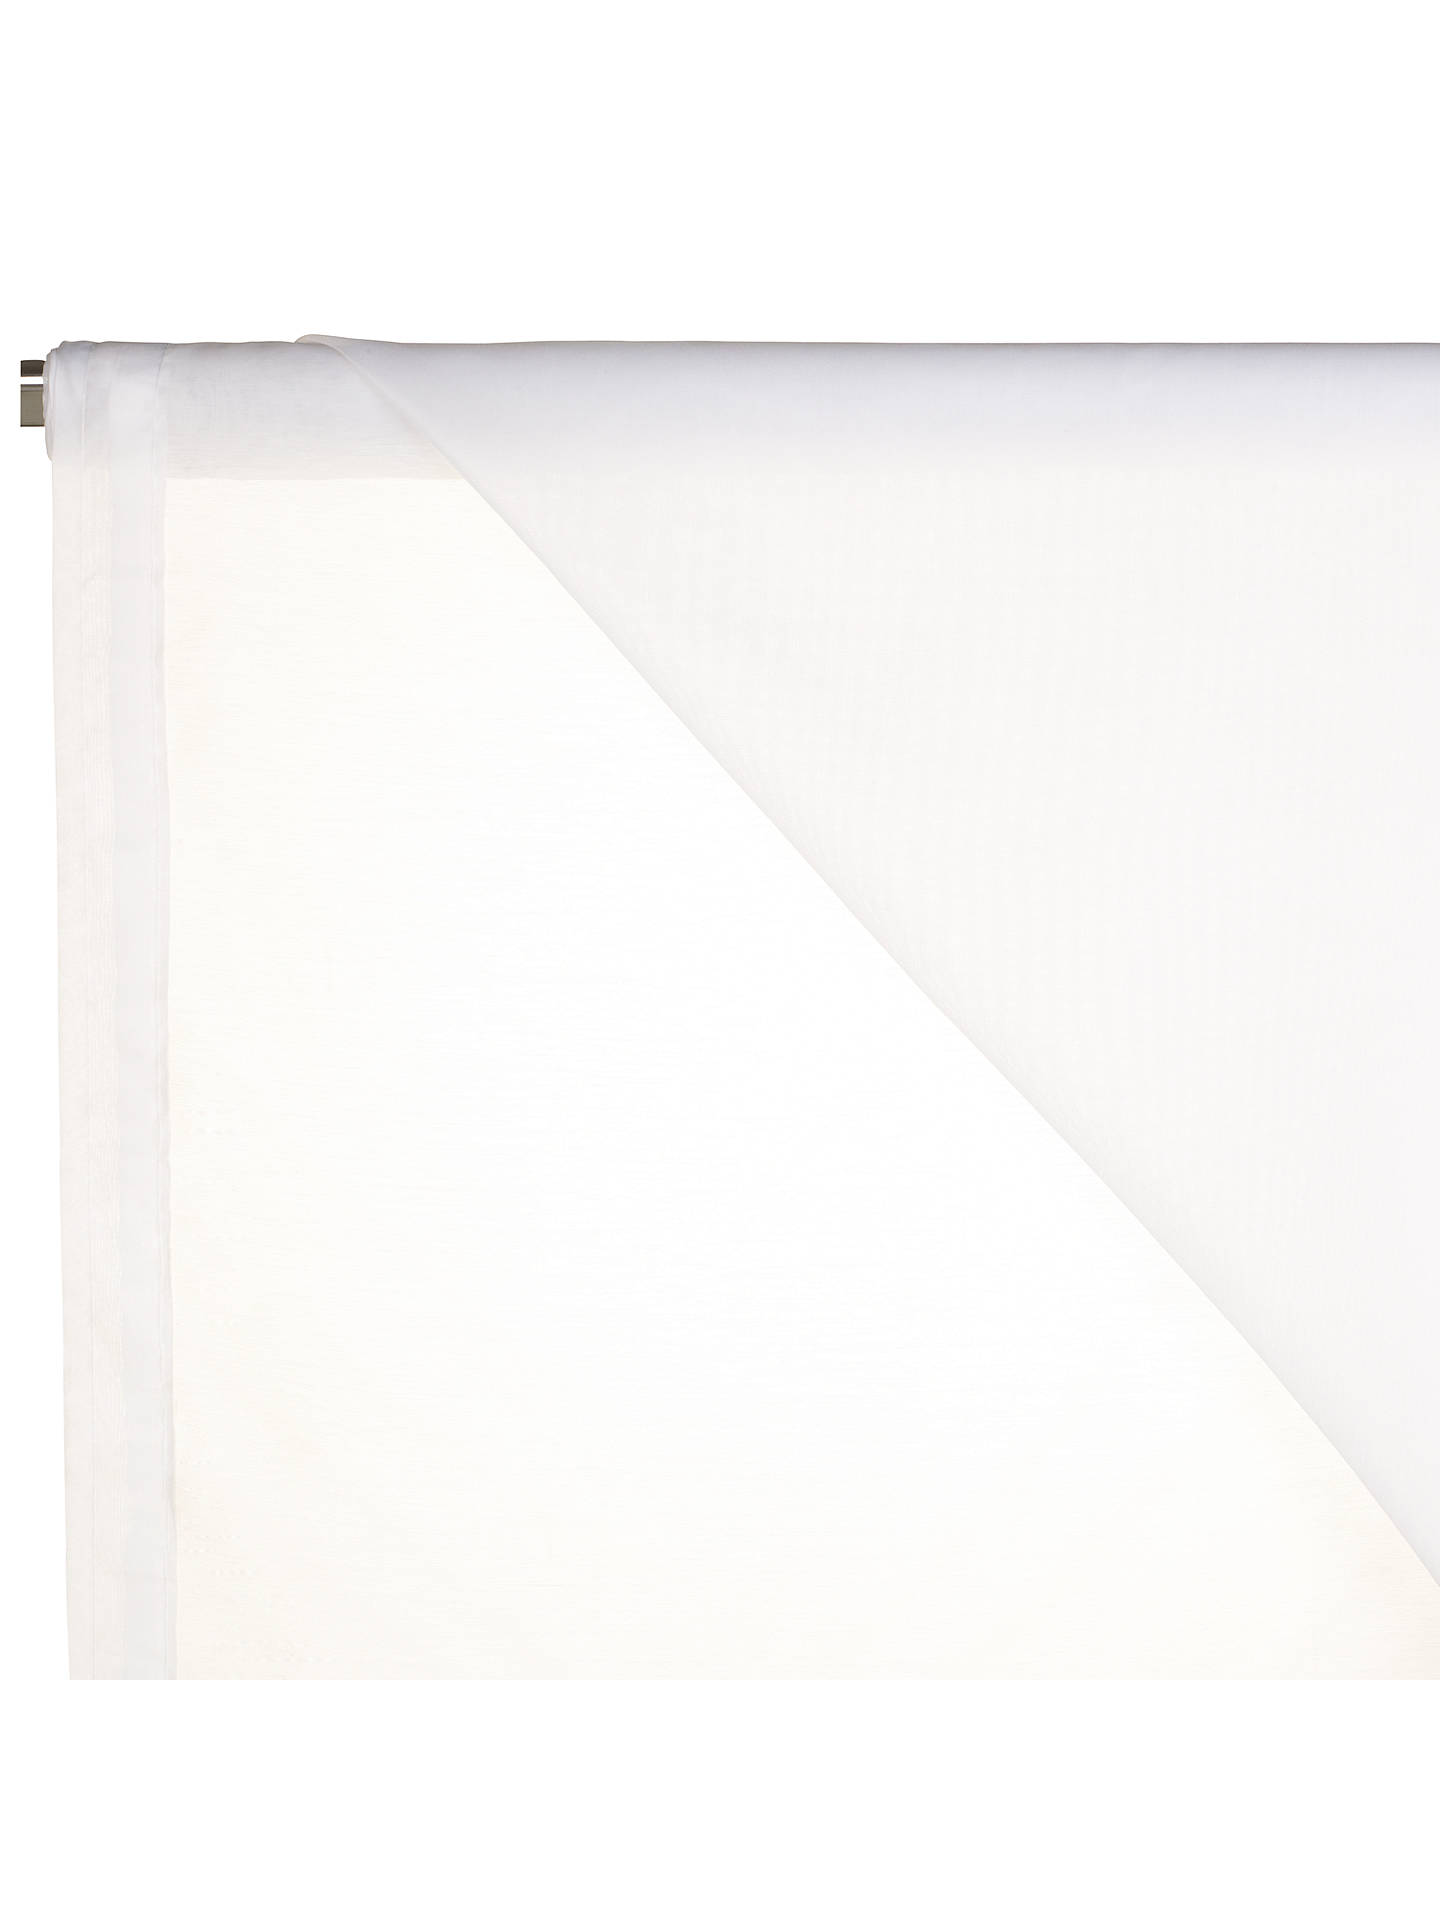 BuyJohn Lewis & Partners Peru Slot Headed Voile Fabric, White, Drop 228cm Online at johnlewis.com